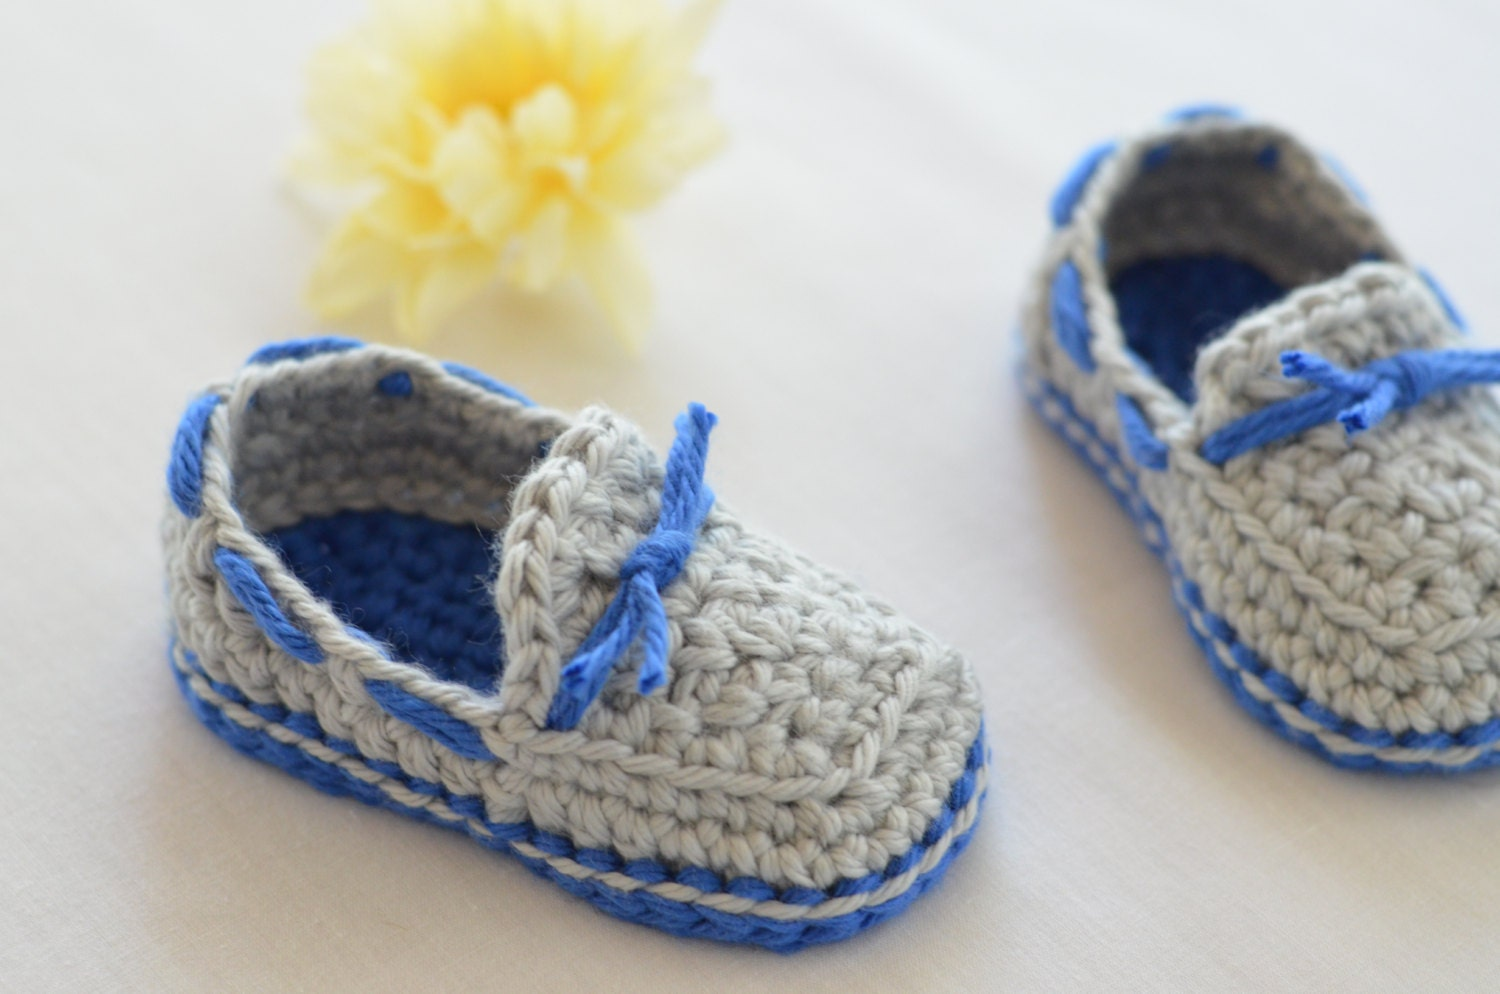 Crochet Pattern For Baby Boat Shoes : Crocheted Baby Boat Shoes // Baby Boy by PeachesAndCreamForMe